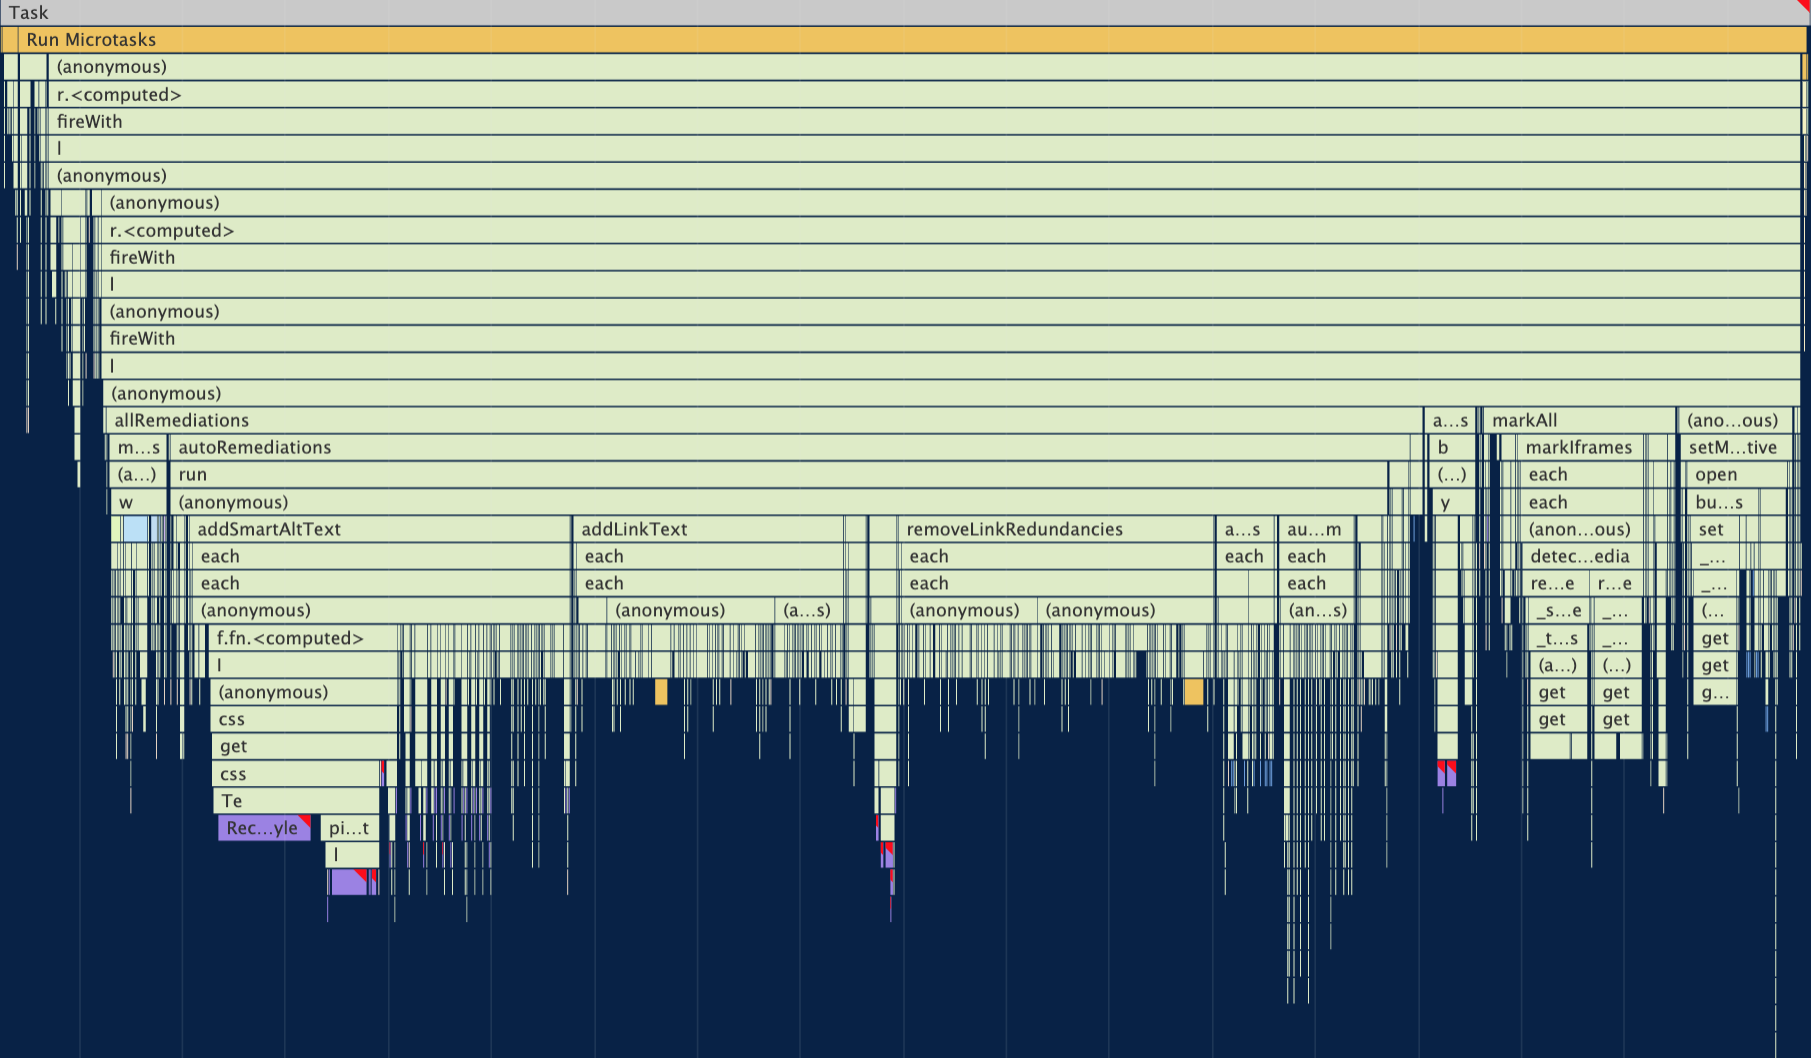 A depiction of a long task in a flame chart from the performance panel in Chrome DevTools.